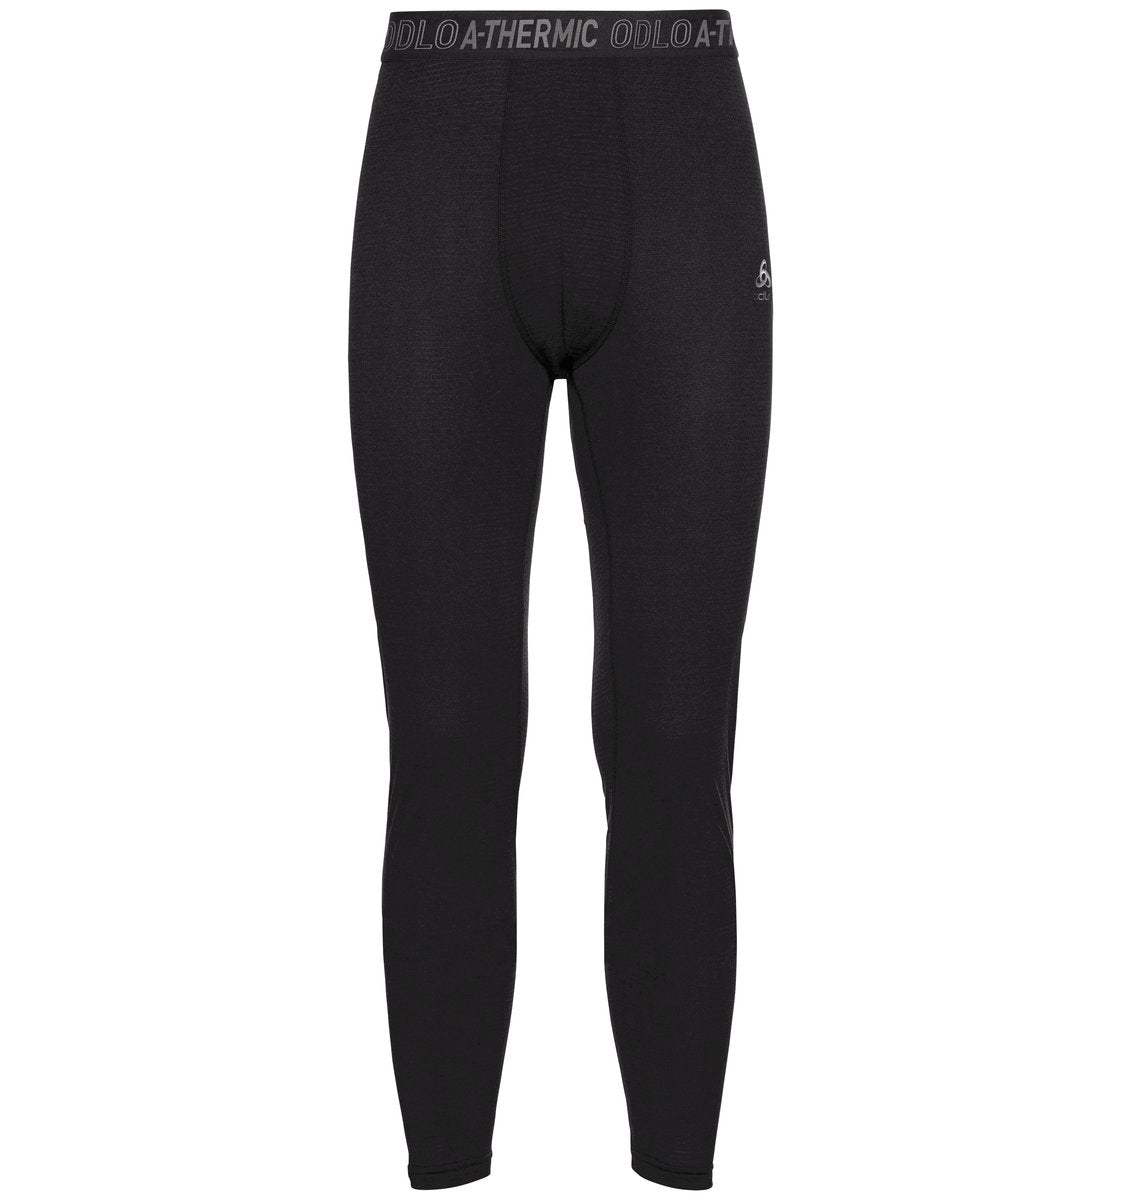 Odlo Men's ACTIVE THERMIC Baselayer Bottoms